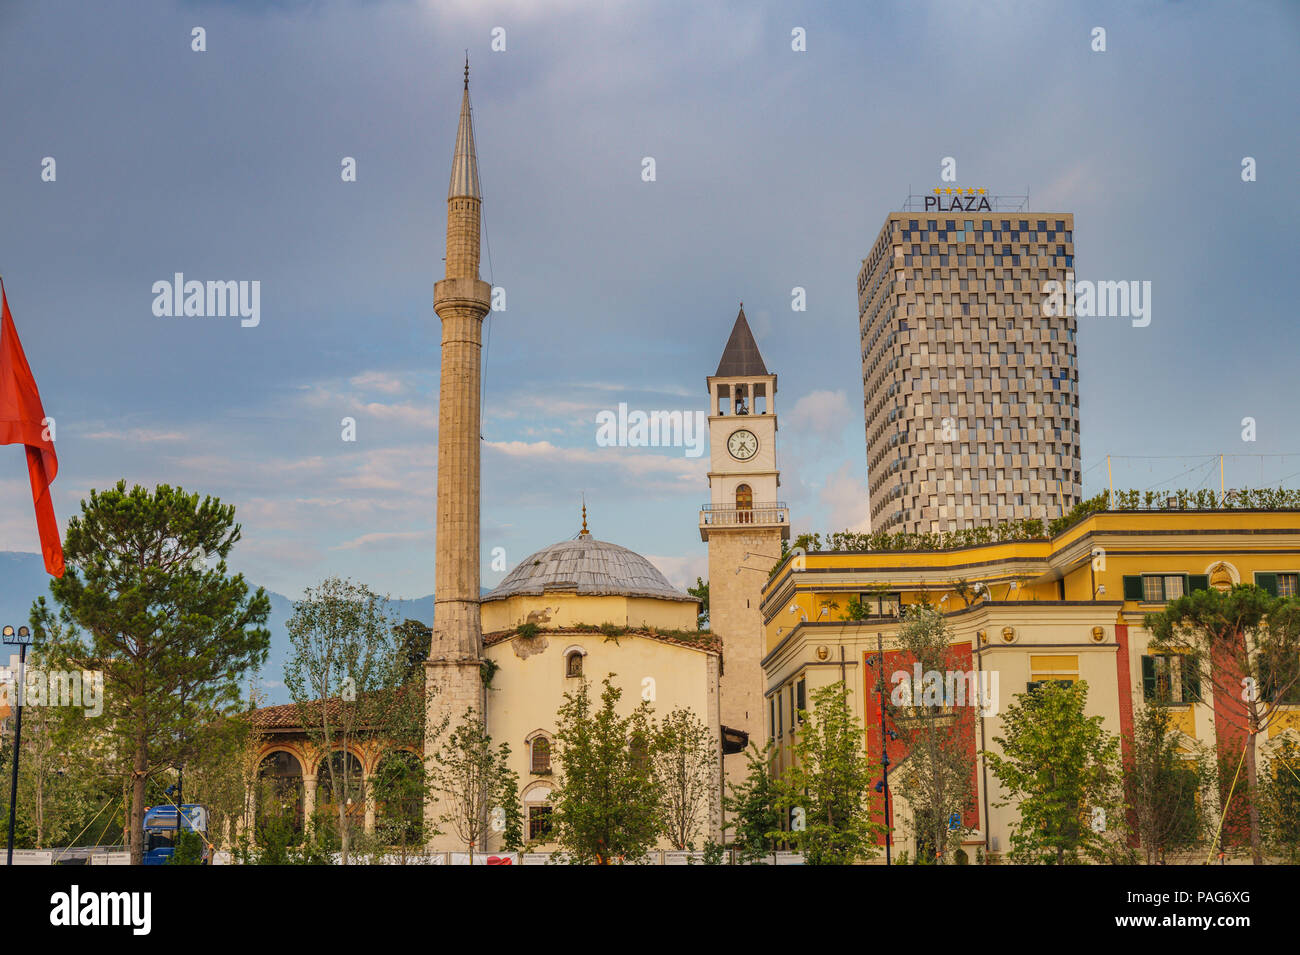 The Ethem Bey Mosque in Skanderbeg Square in the center of Tirana, Albania. - Stock Image